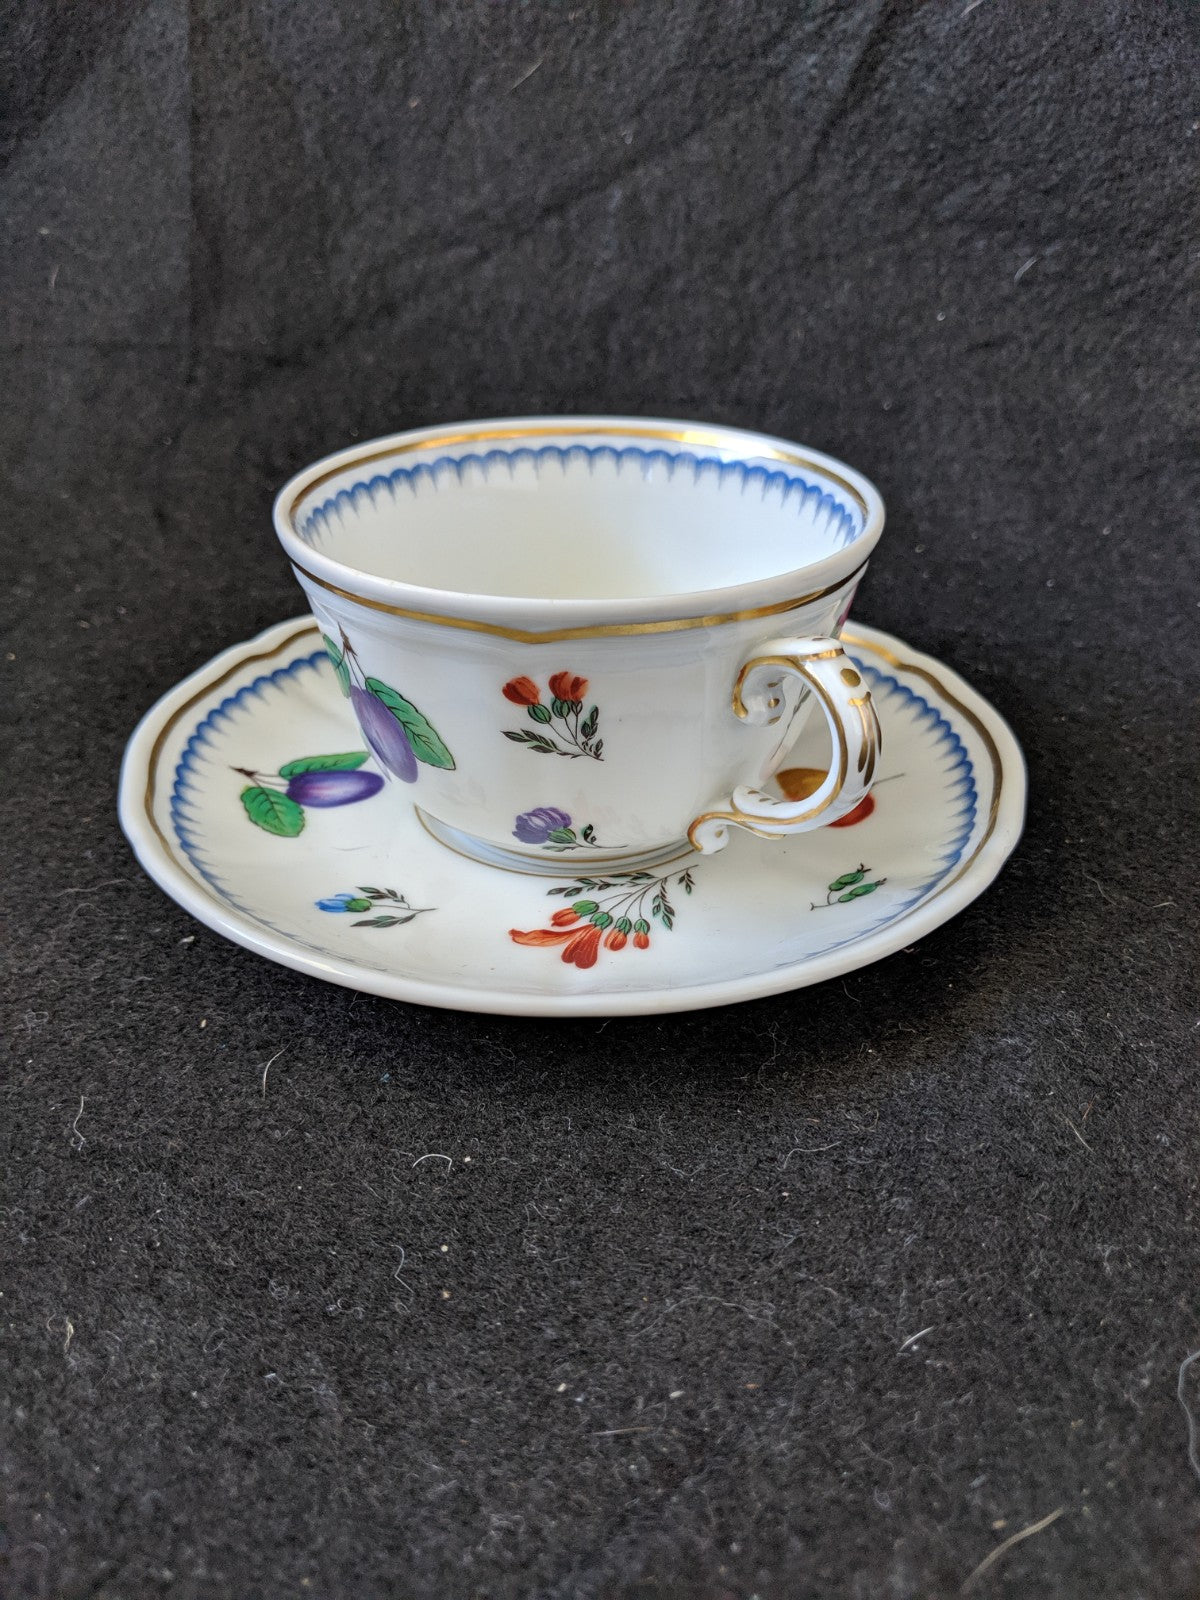 Cup & Saucer set - Fruit, Flowers, trimmed in blue scallops Ginori, Itanlian China